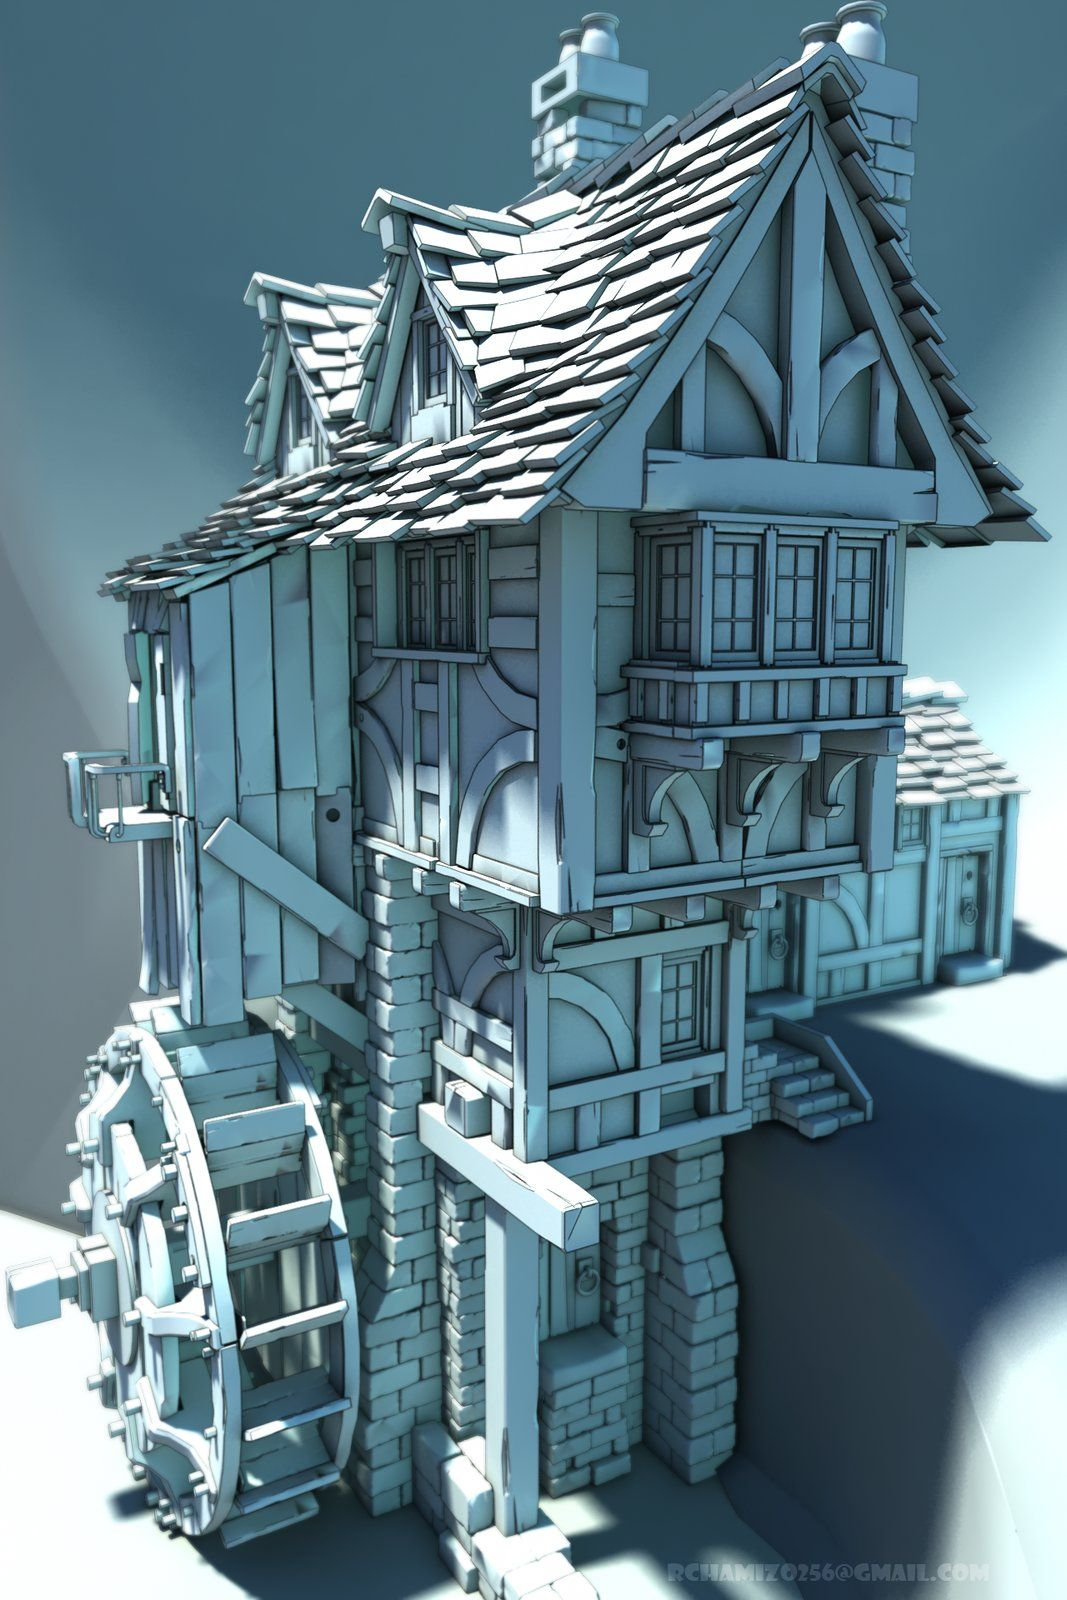 3d Concept And Roughs, Ricardo Chamizo On ArtStation At